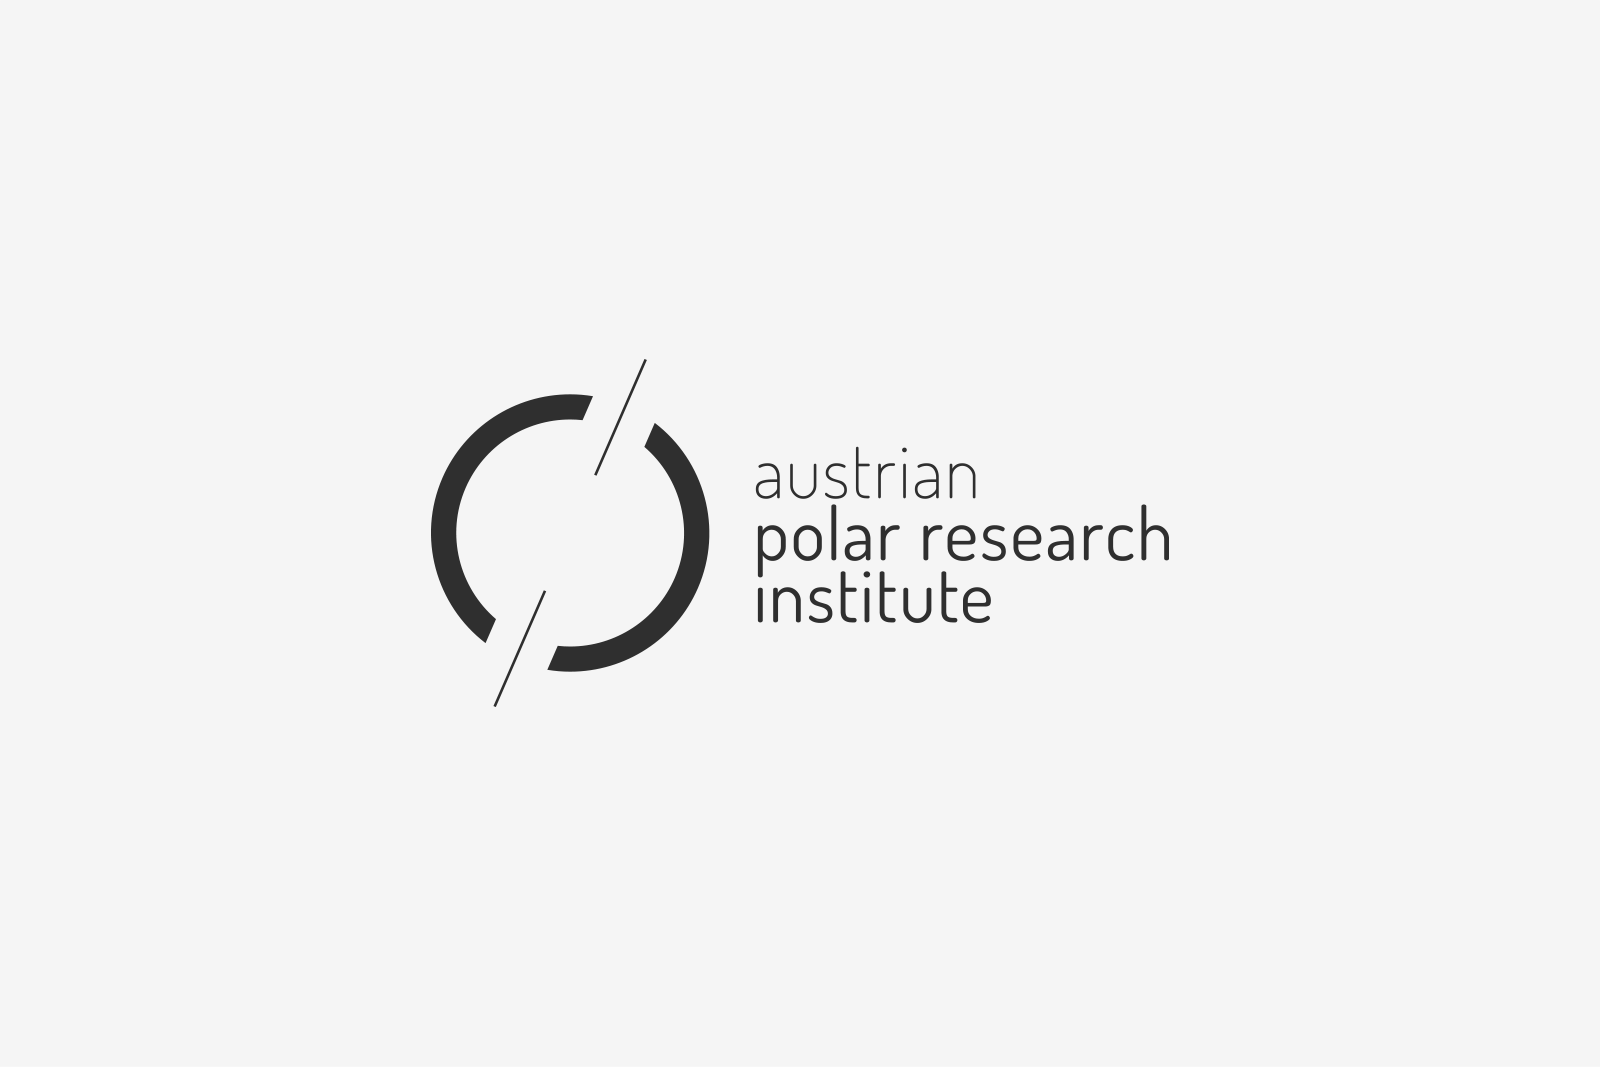 Logo Austrian Polar Research Institute Apri Bw